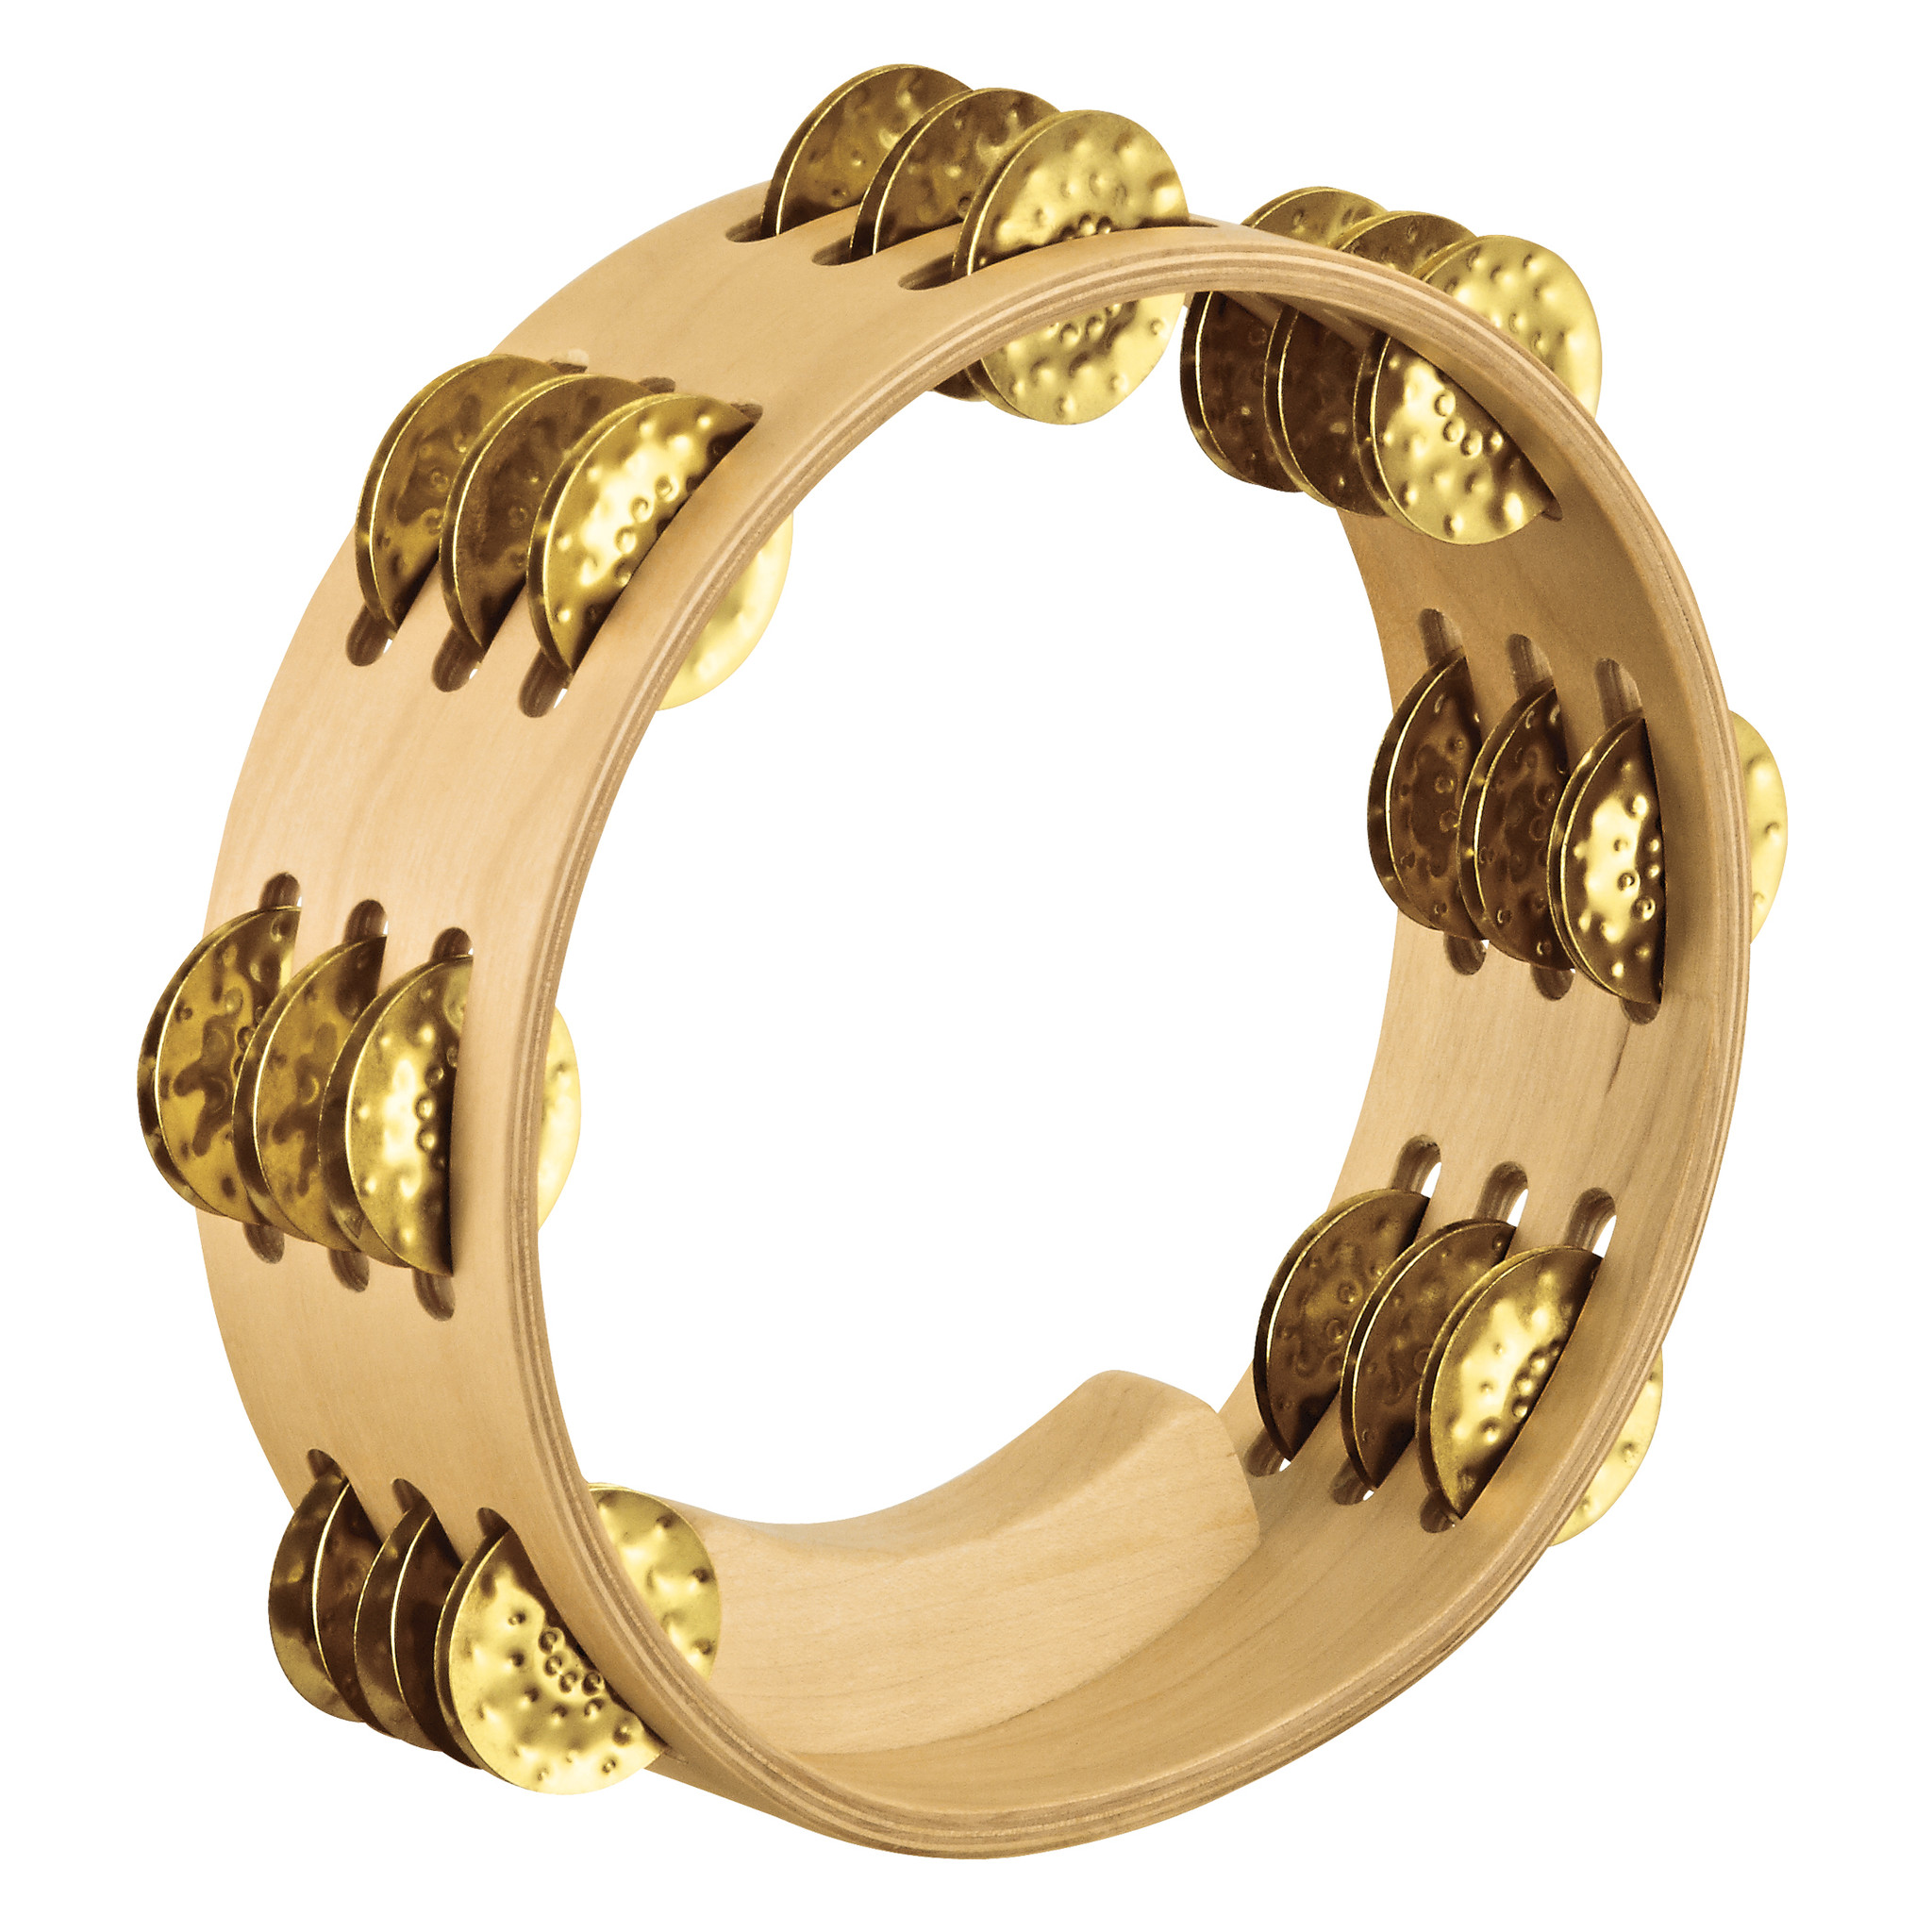 Meinl Percussion Artisan Edition Compact Tambourine, Brass Jingles by Meinl